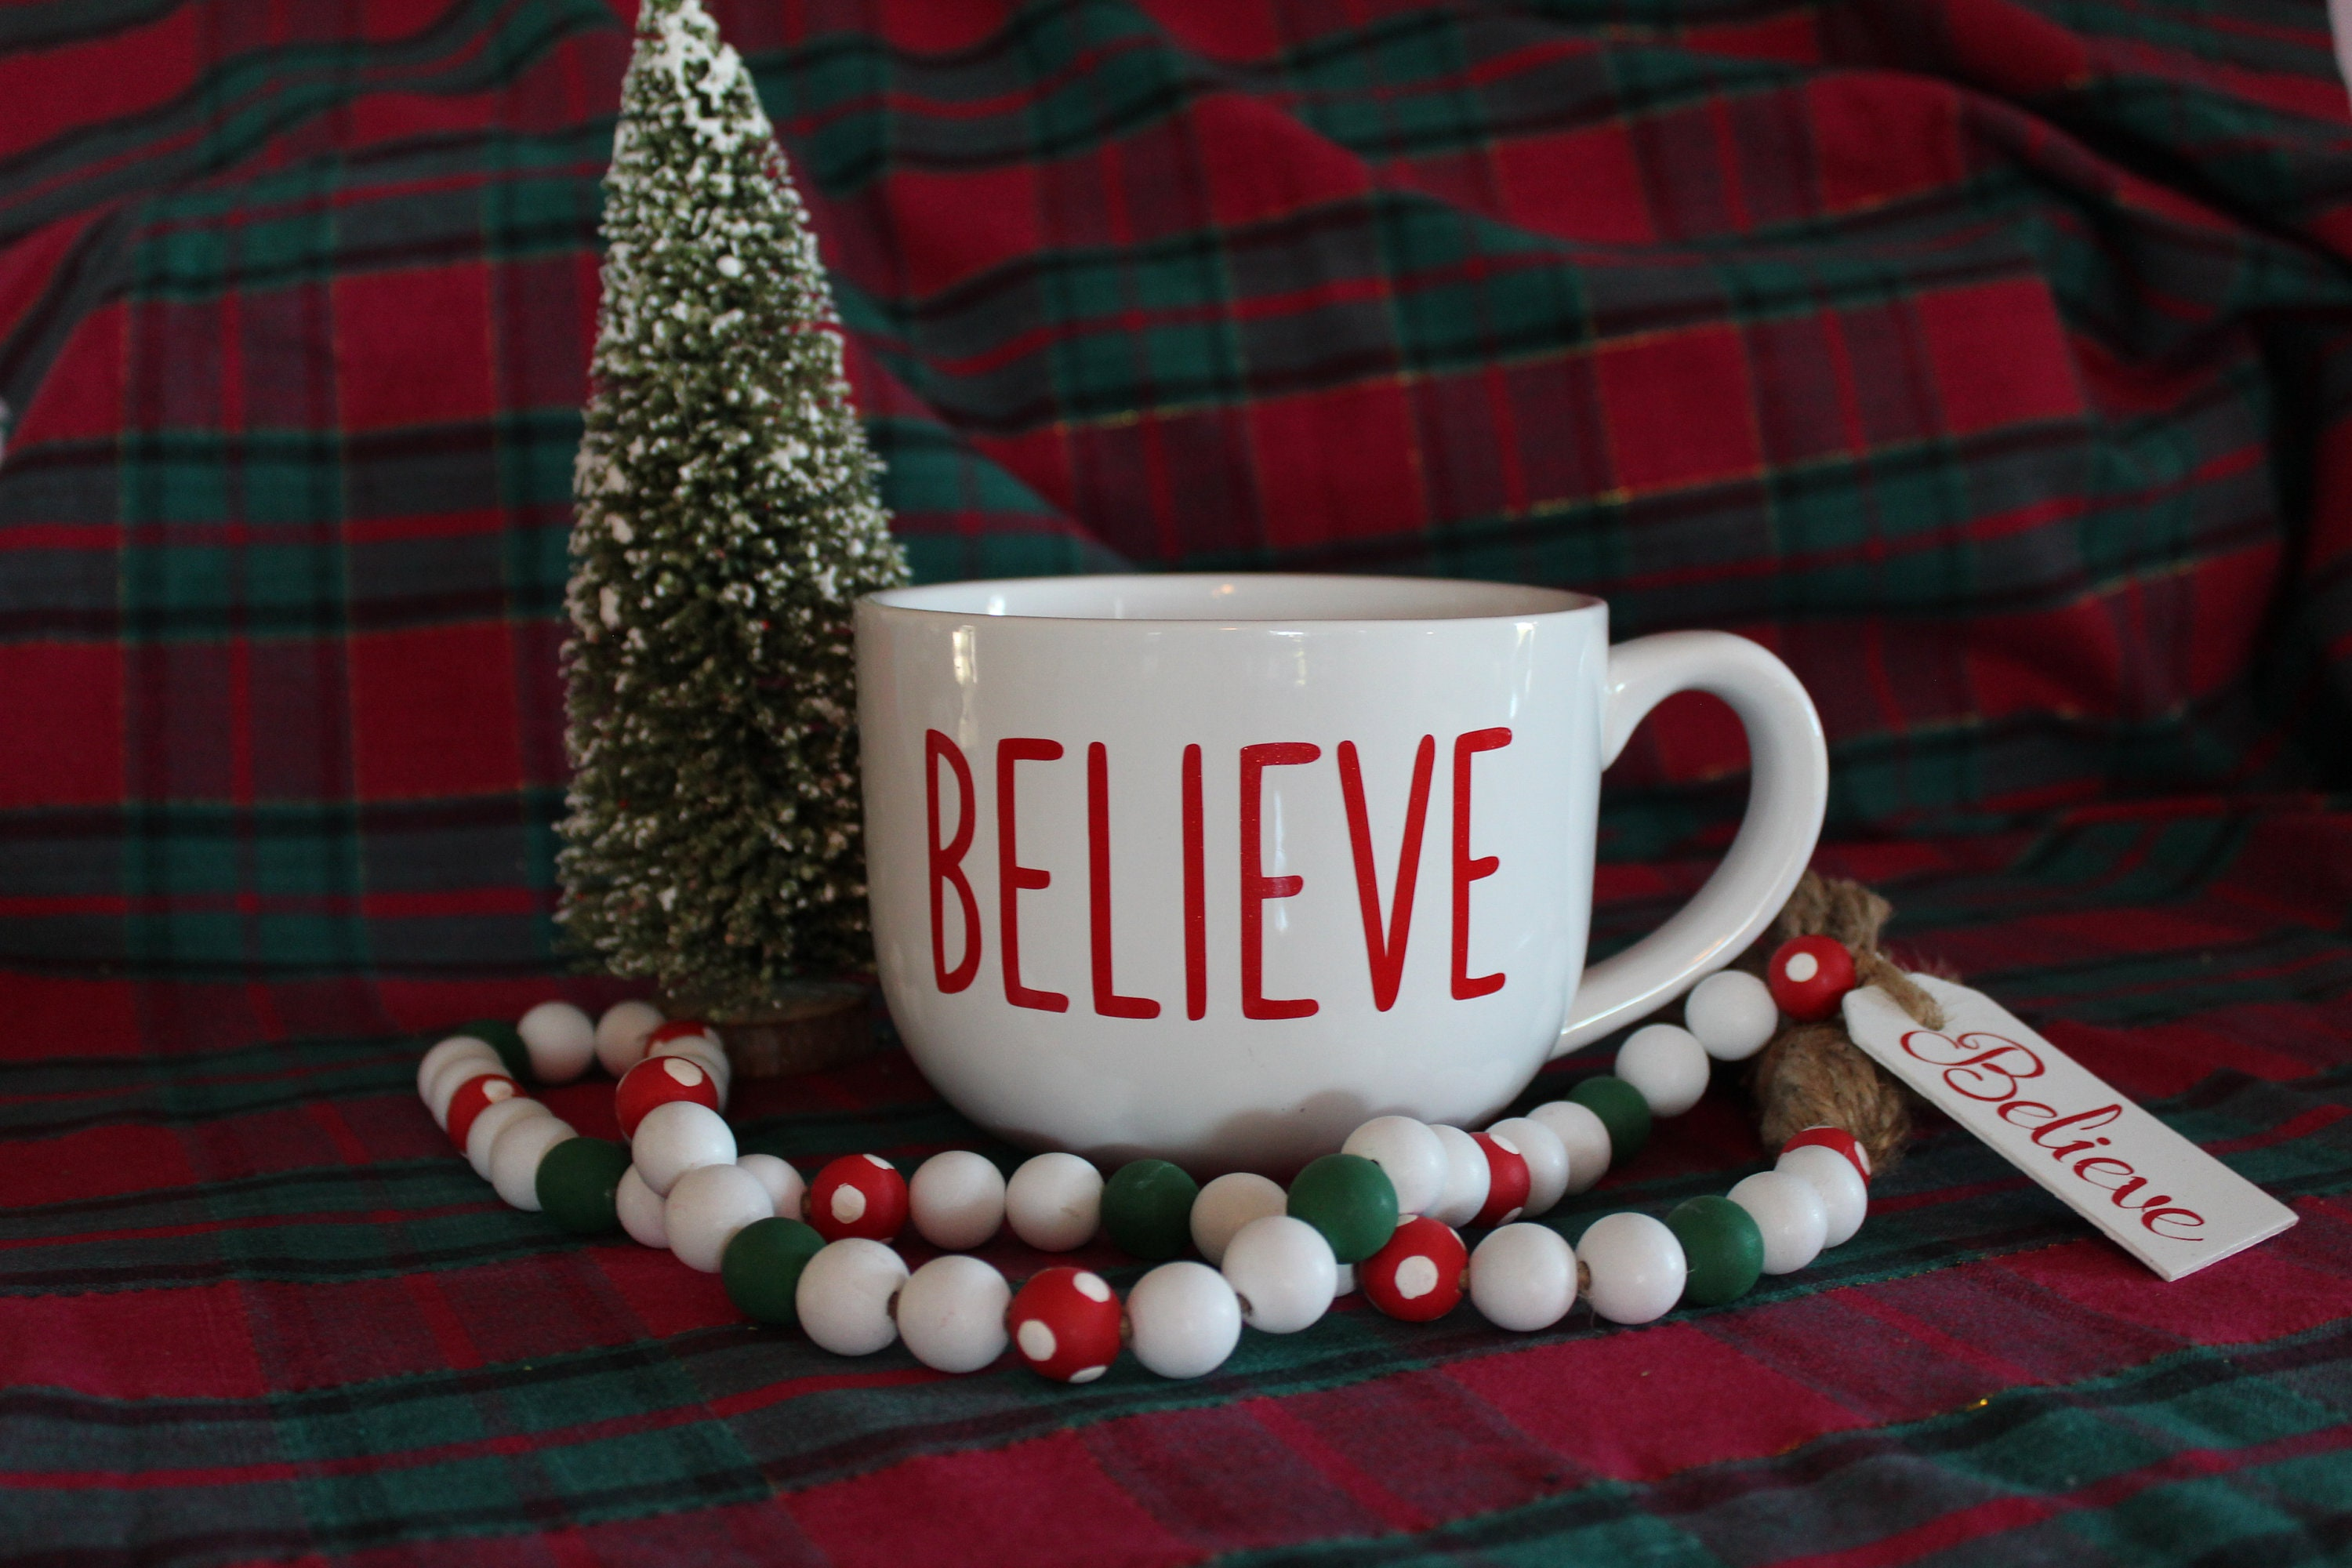 Oversized cocoa mug from GlitterMomz with believe written on it makes a great gift for the woman who's always cold